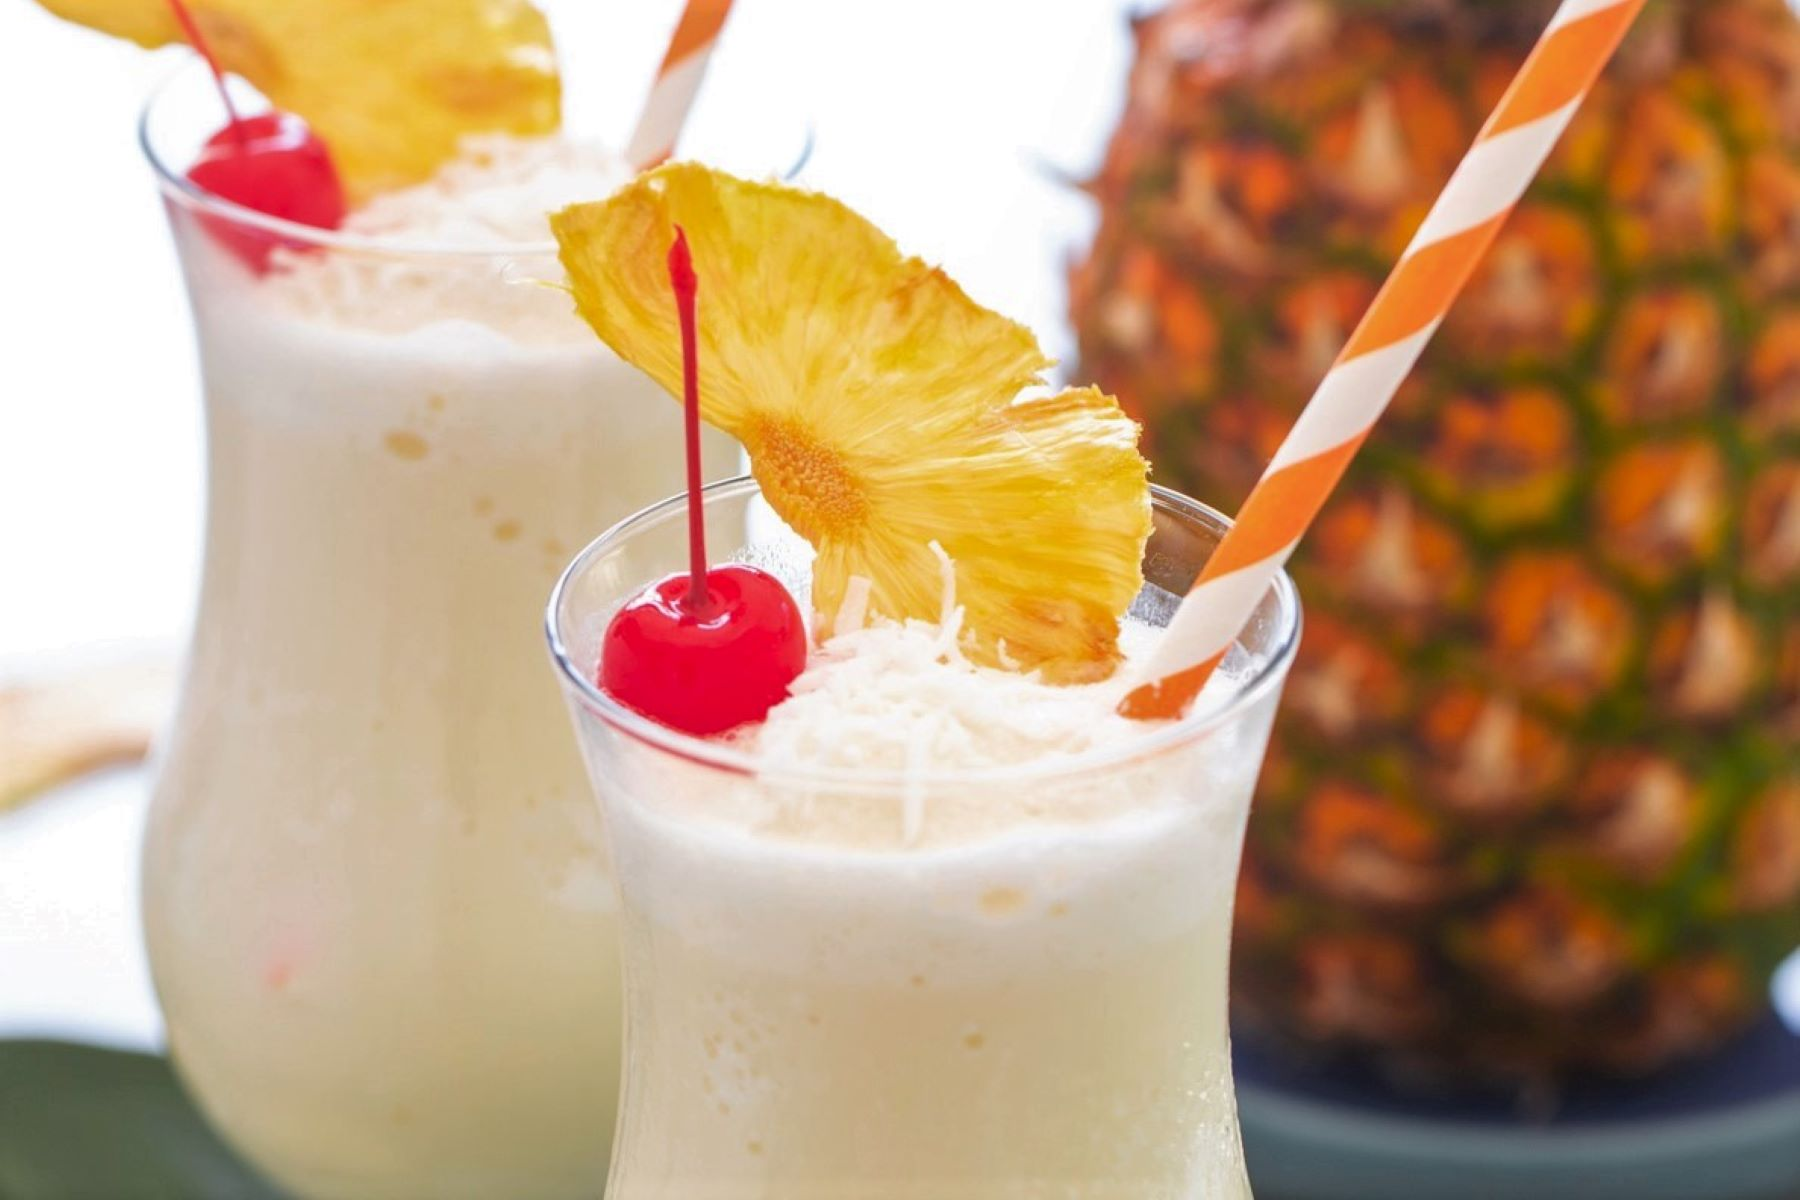 Close up of a pina colada garnished with a red cherry, dried pineapple wedge, and shredded coconut.